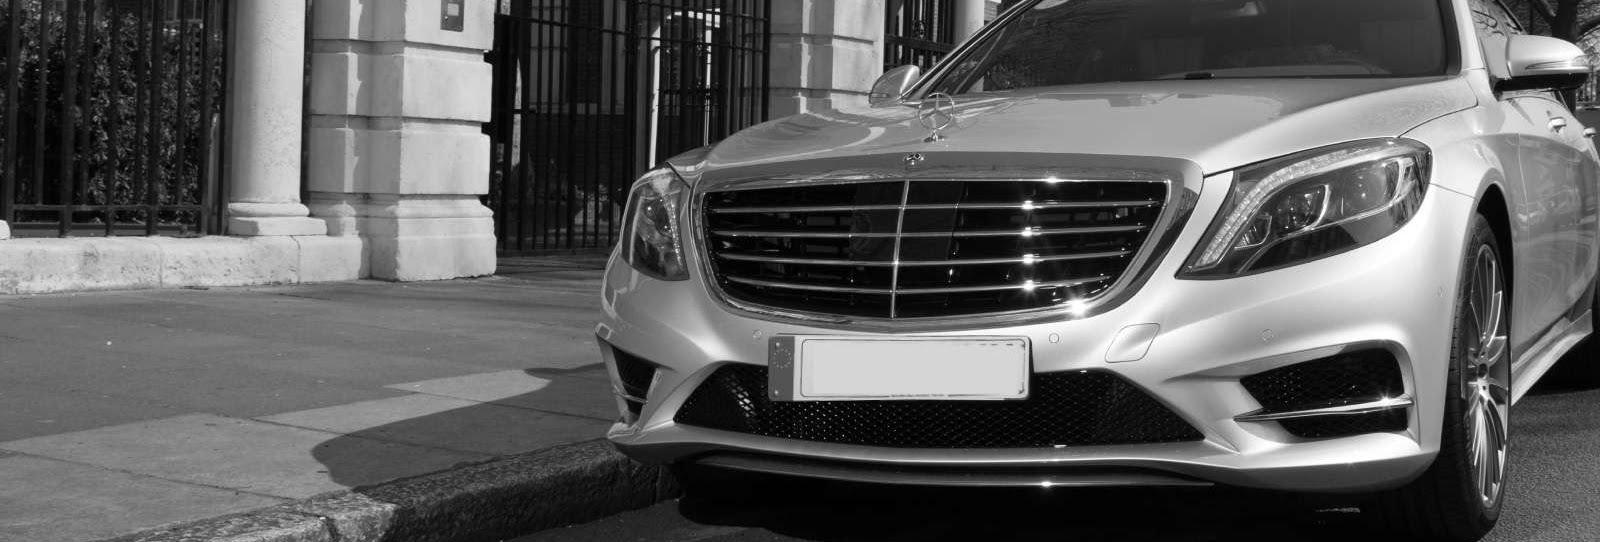 Professional chauffeur services for businesses and individuals